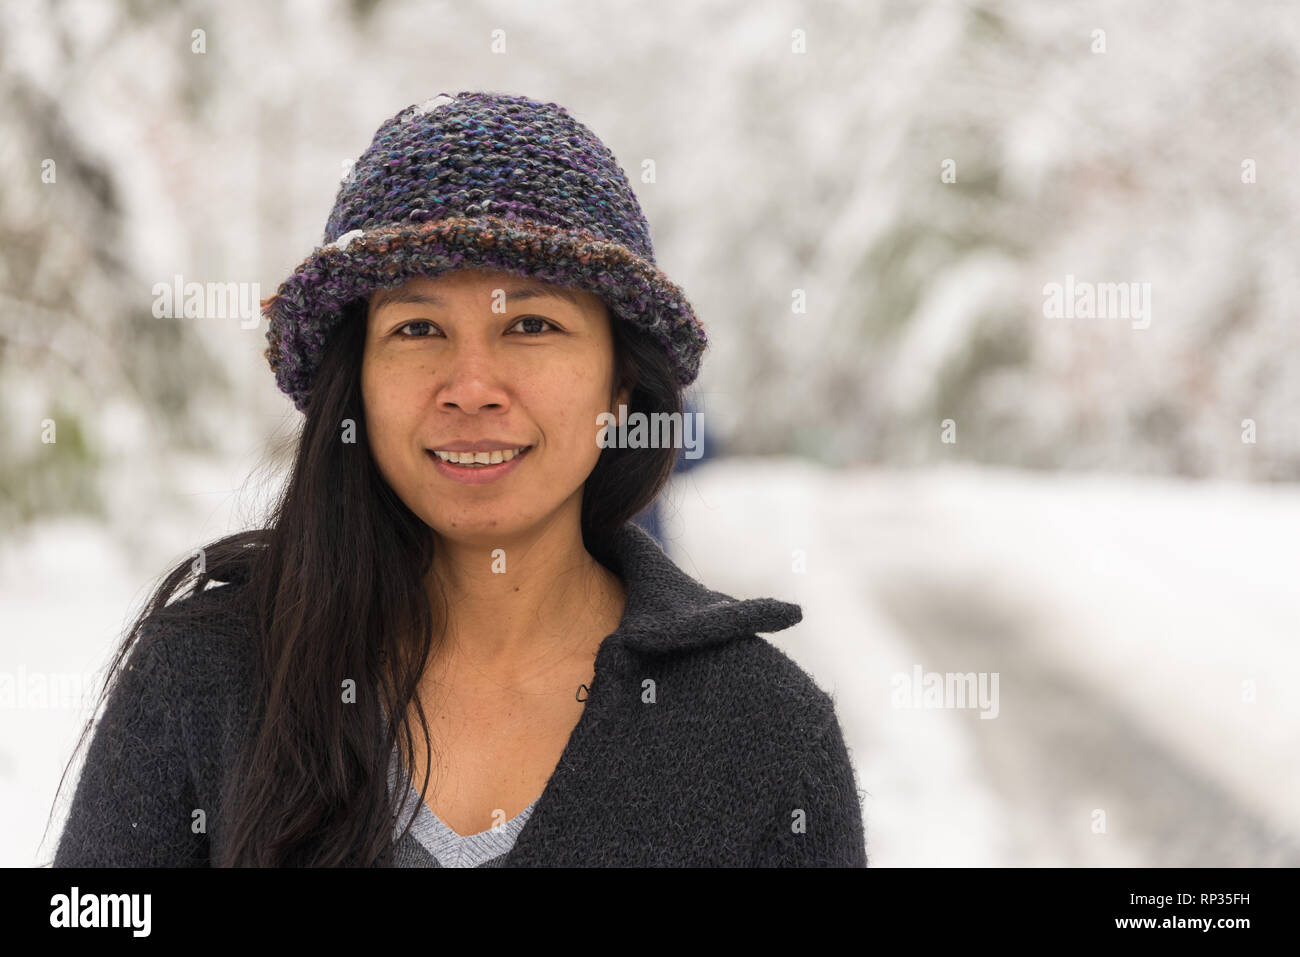 9dec853de7d Asian woman in hat standing in front of trees after snow storm Stock ...